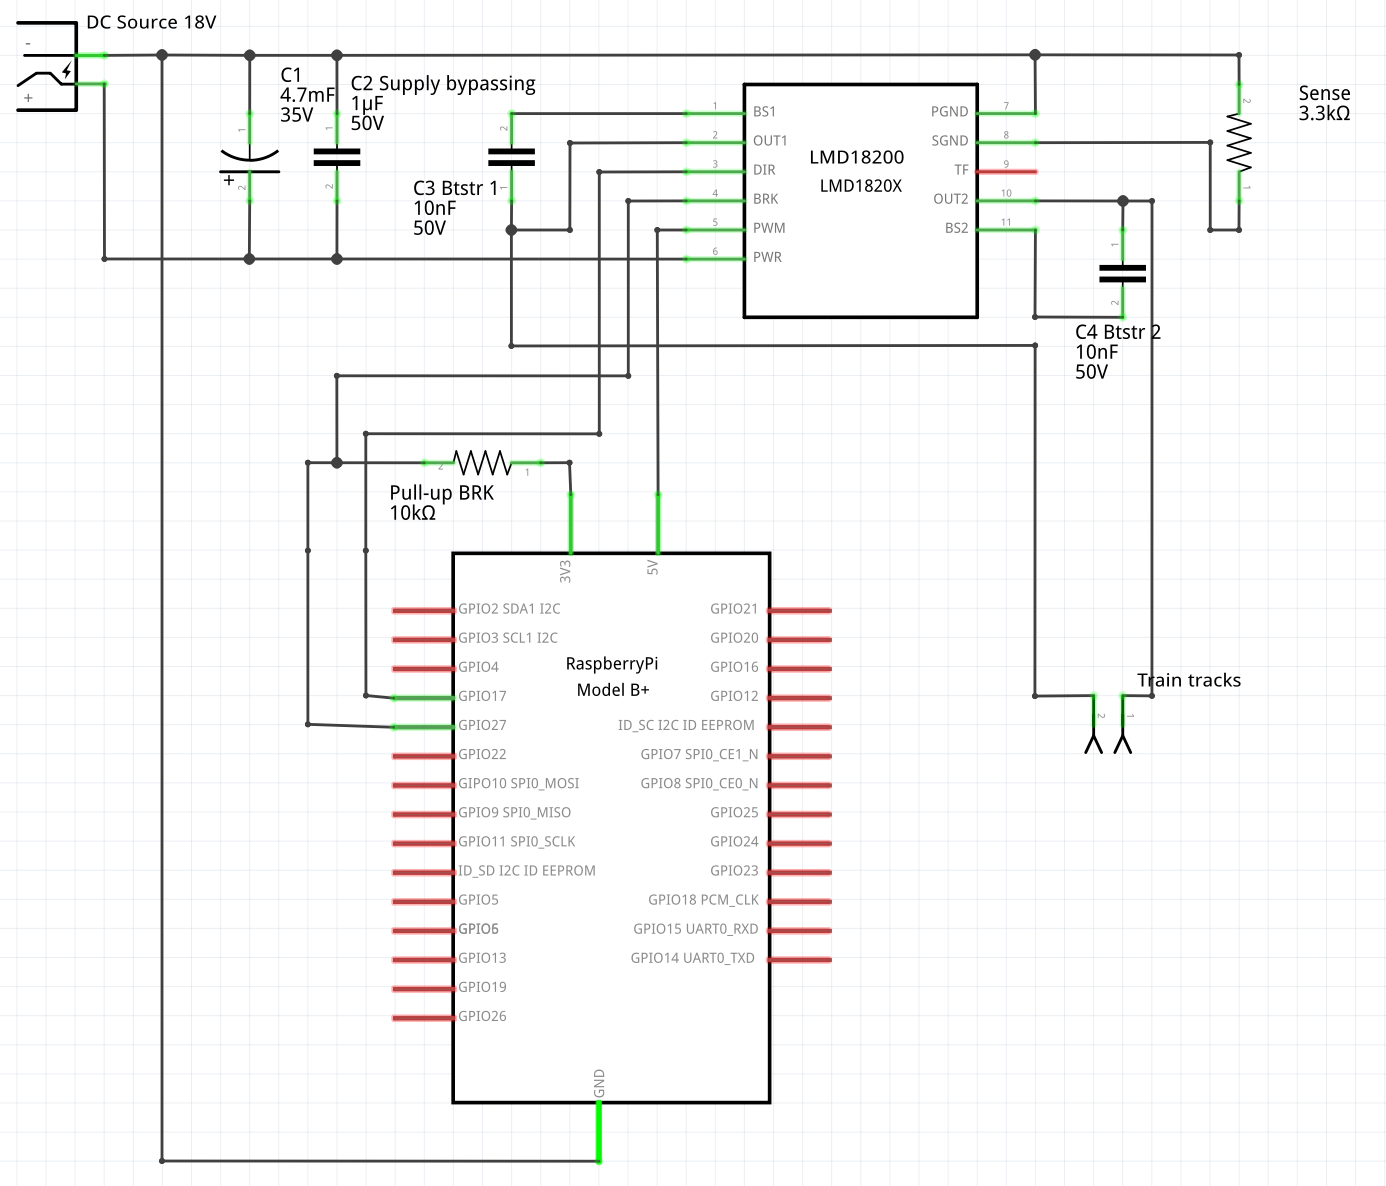 Hsanjuan Dccpi A Simple Easy To Use Nmra Digital Command Control Using Wiringpi In Python Booster Schematics